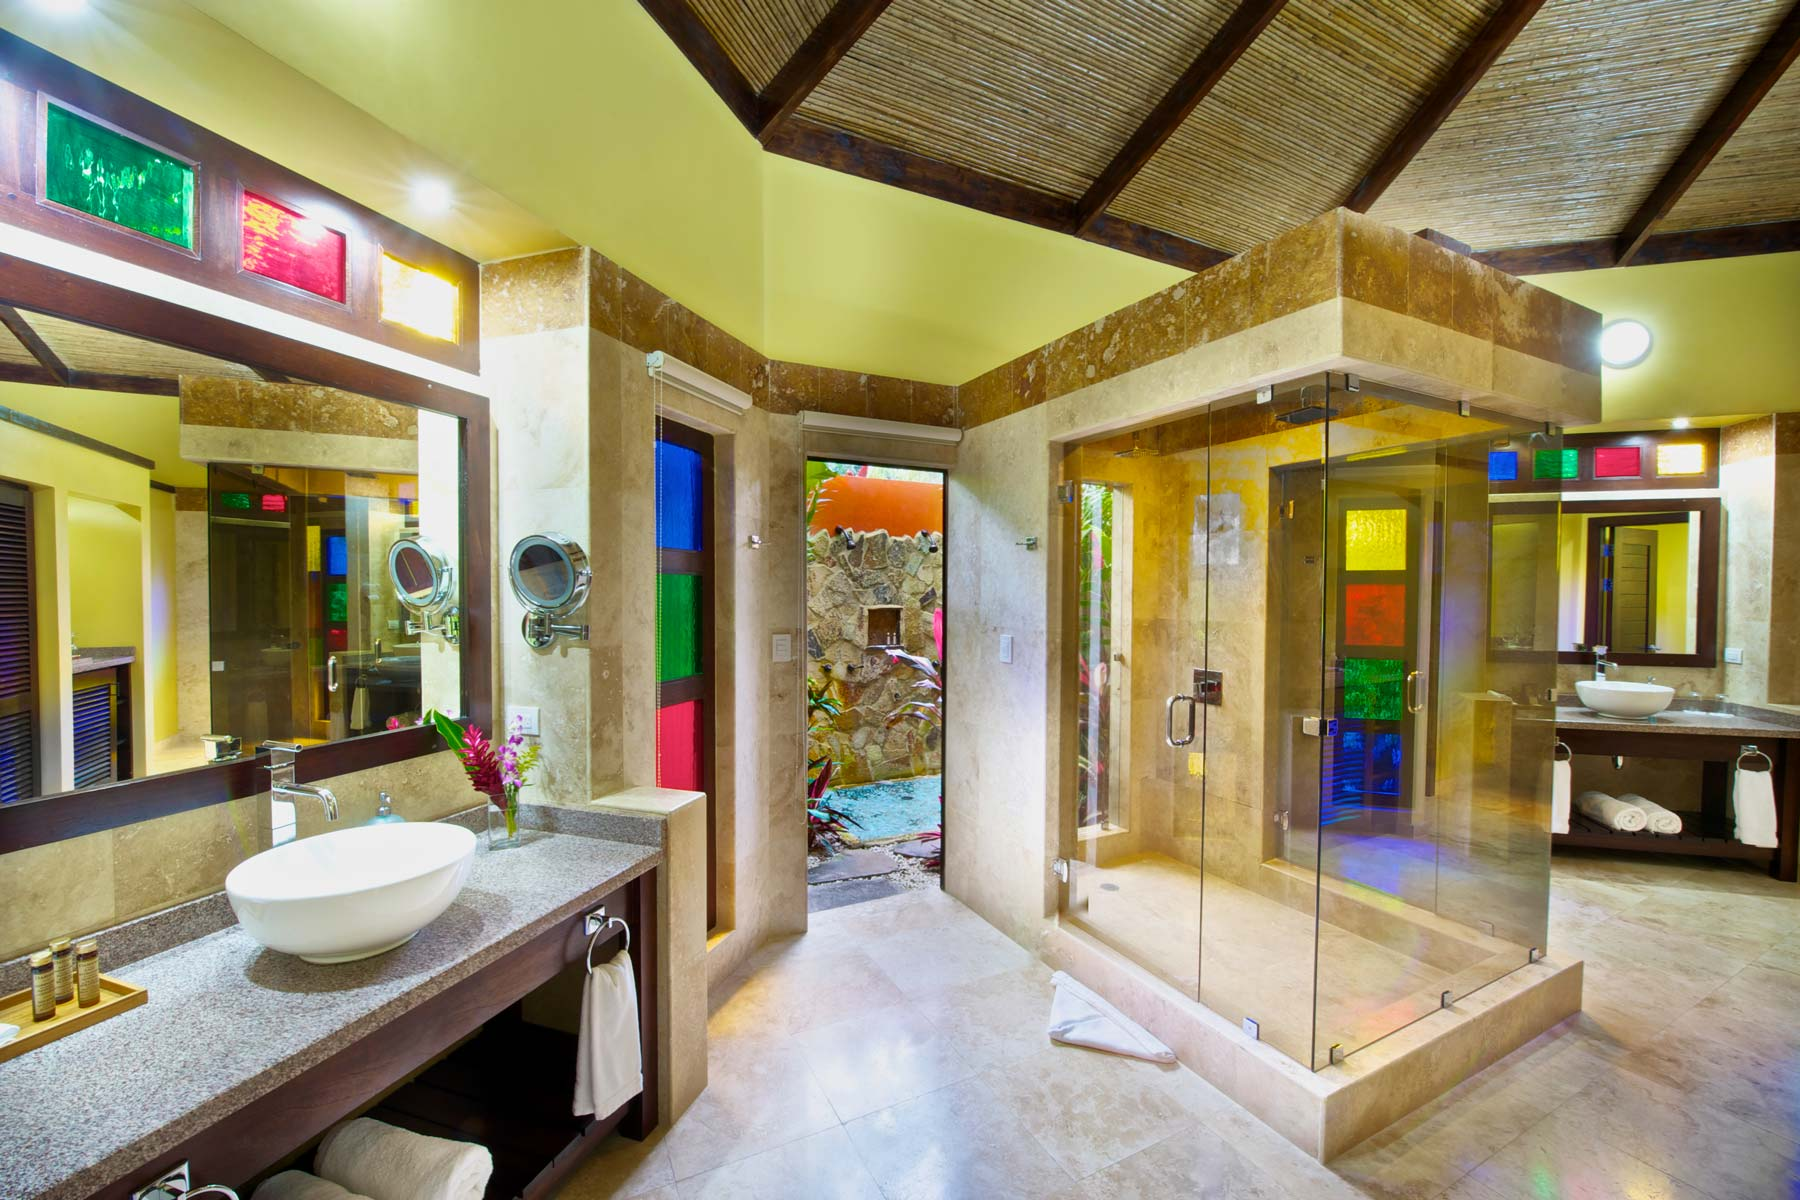 Bathroom at the Nayara Gardens resort in Costa Rica